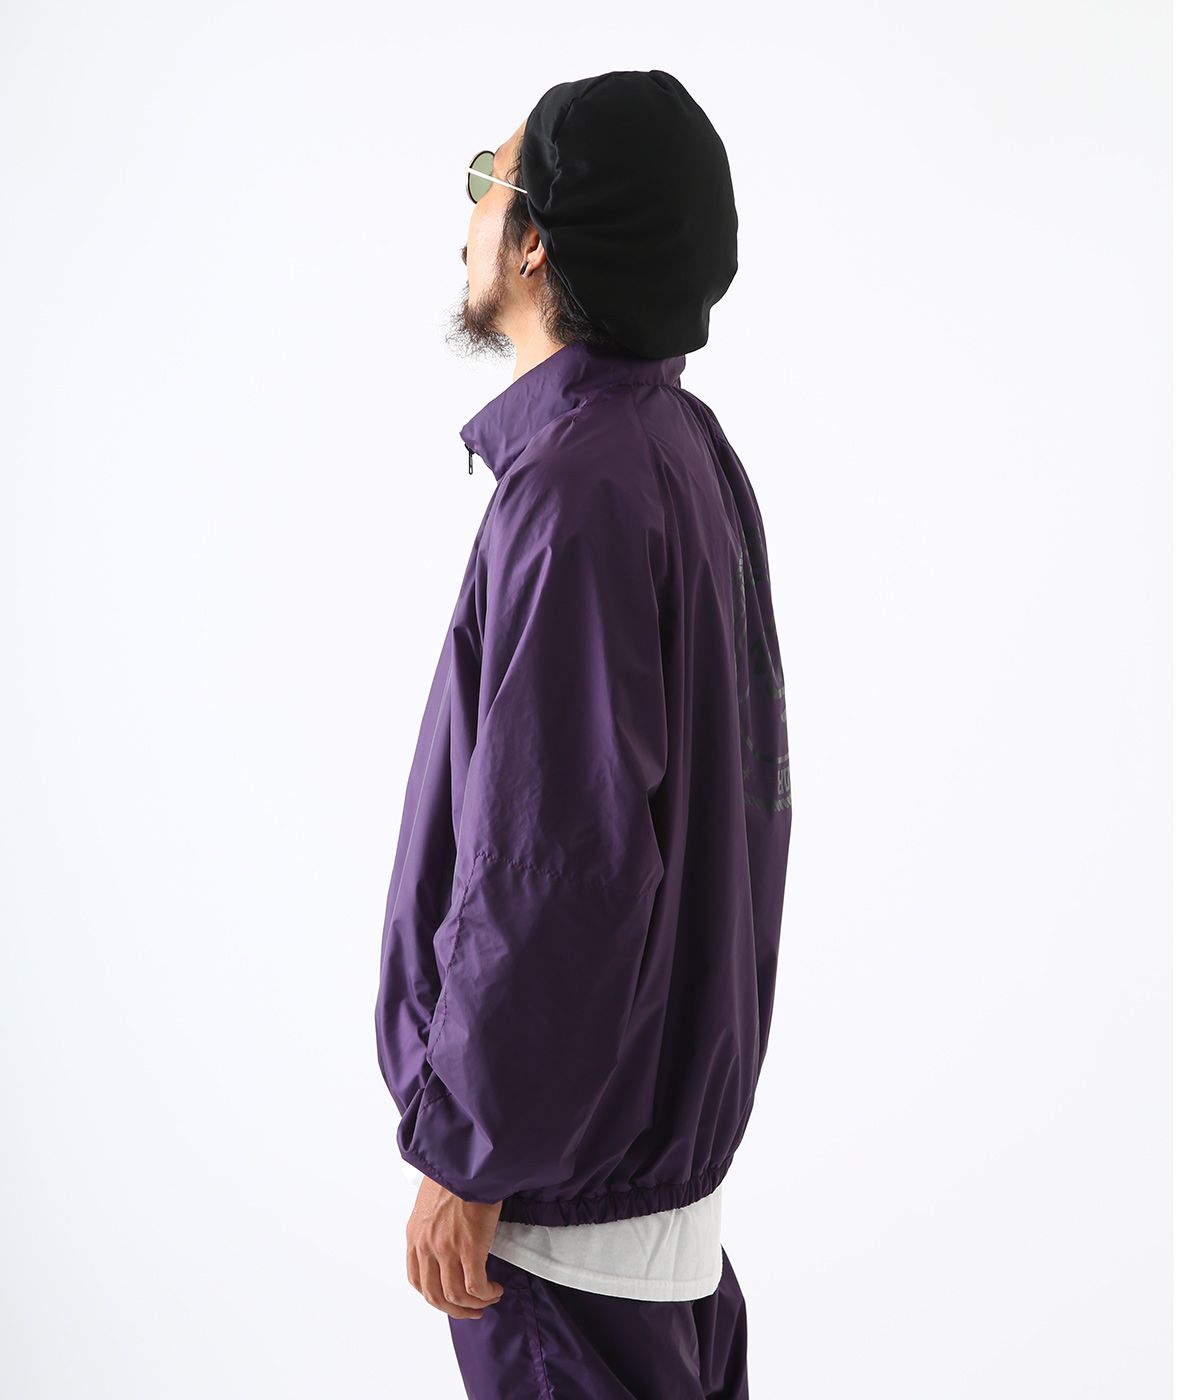 NYLON JKT EXECUTION S